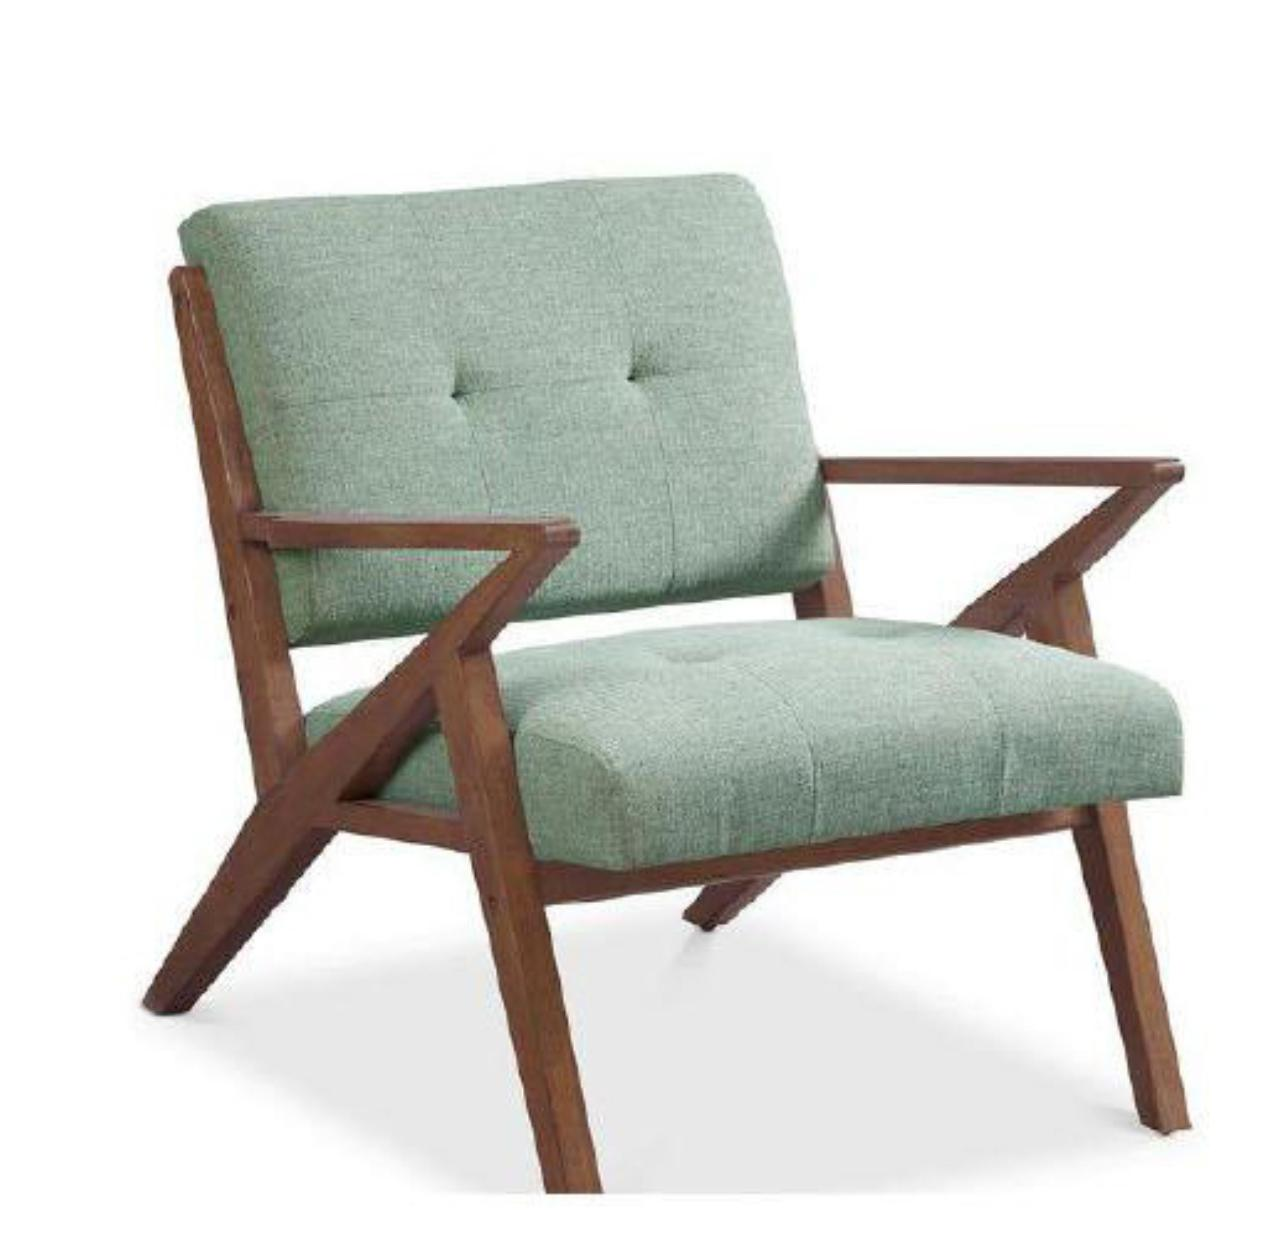 Mid-Century Retro Modern Fabric Upholstered Wooden Lounge Chair | Modern Scandinavian Style Leather